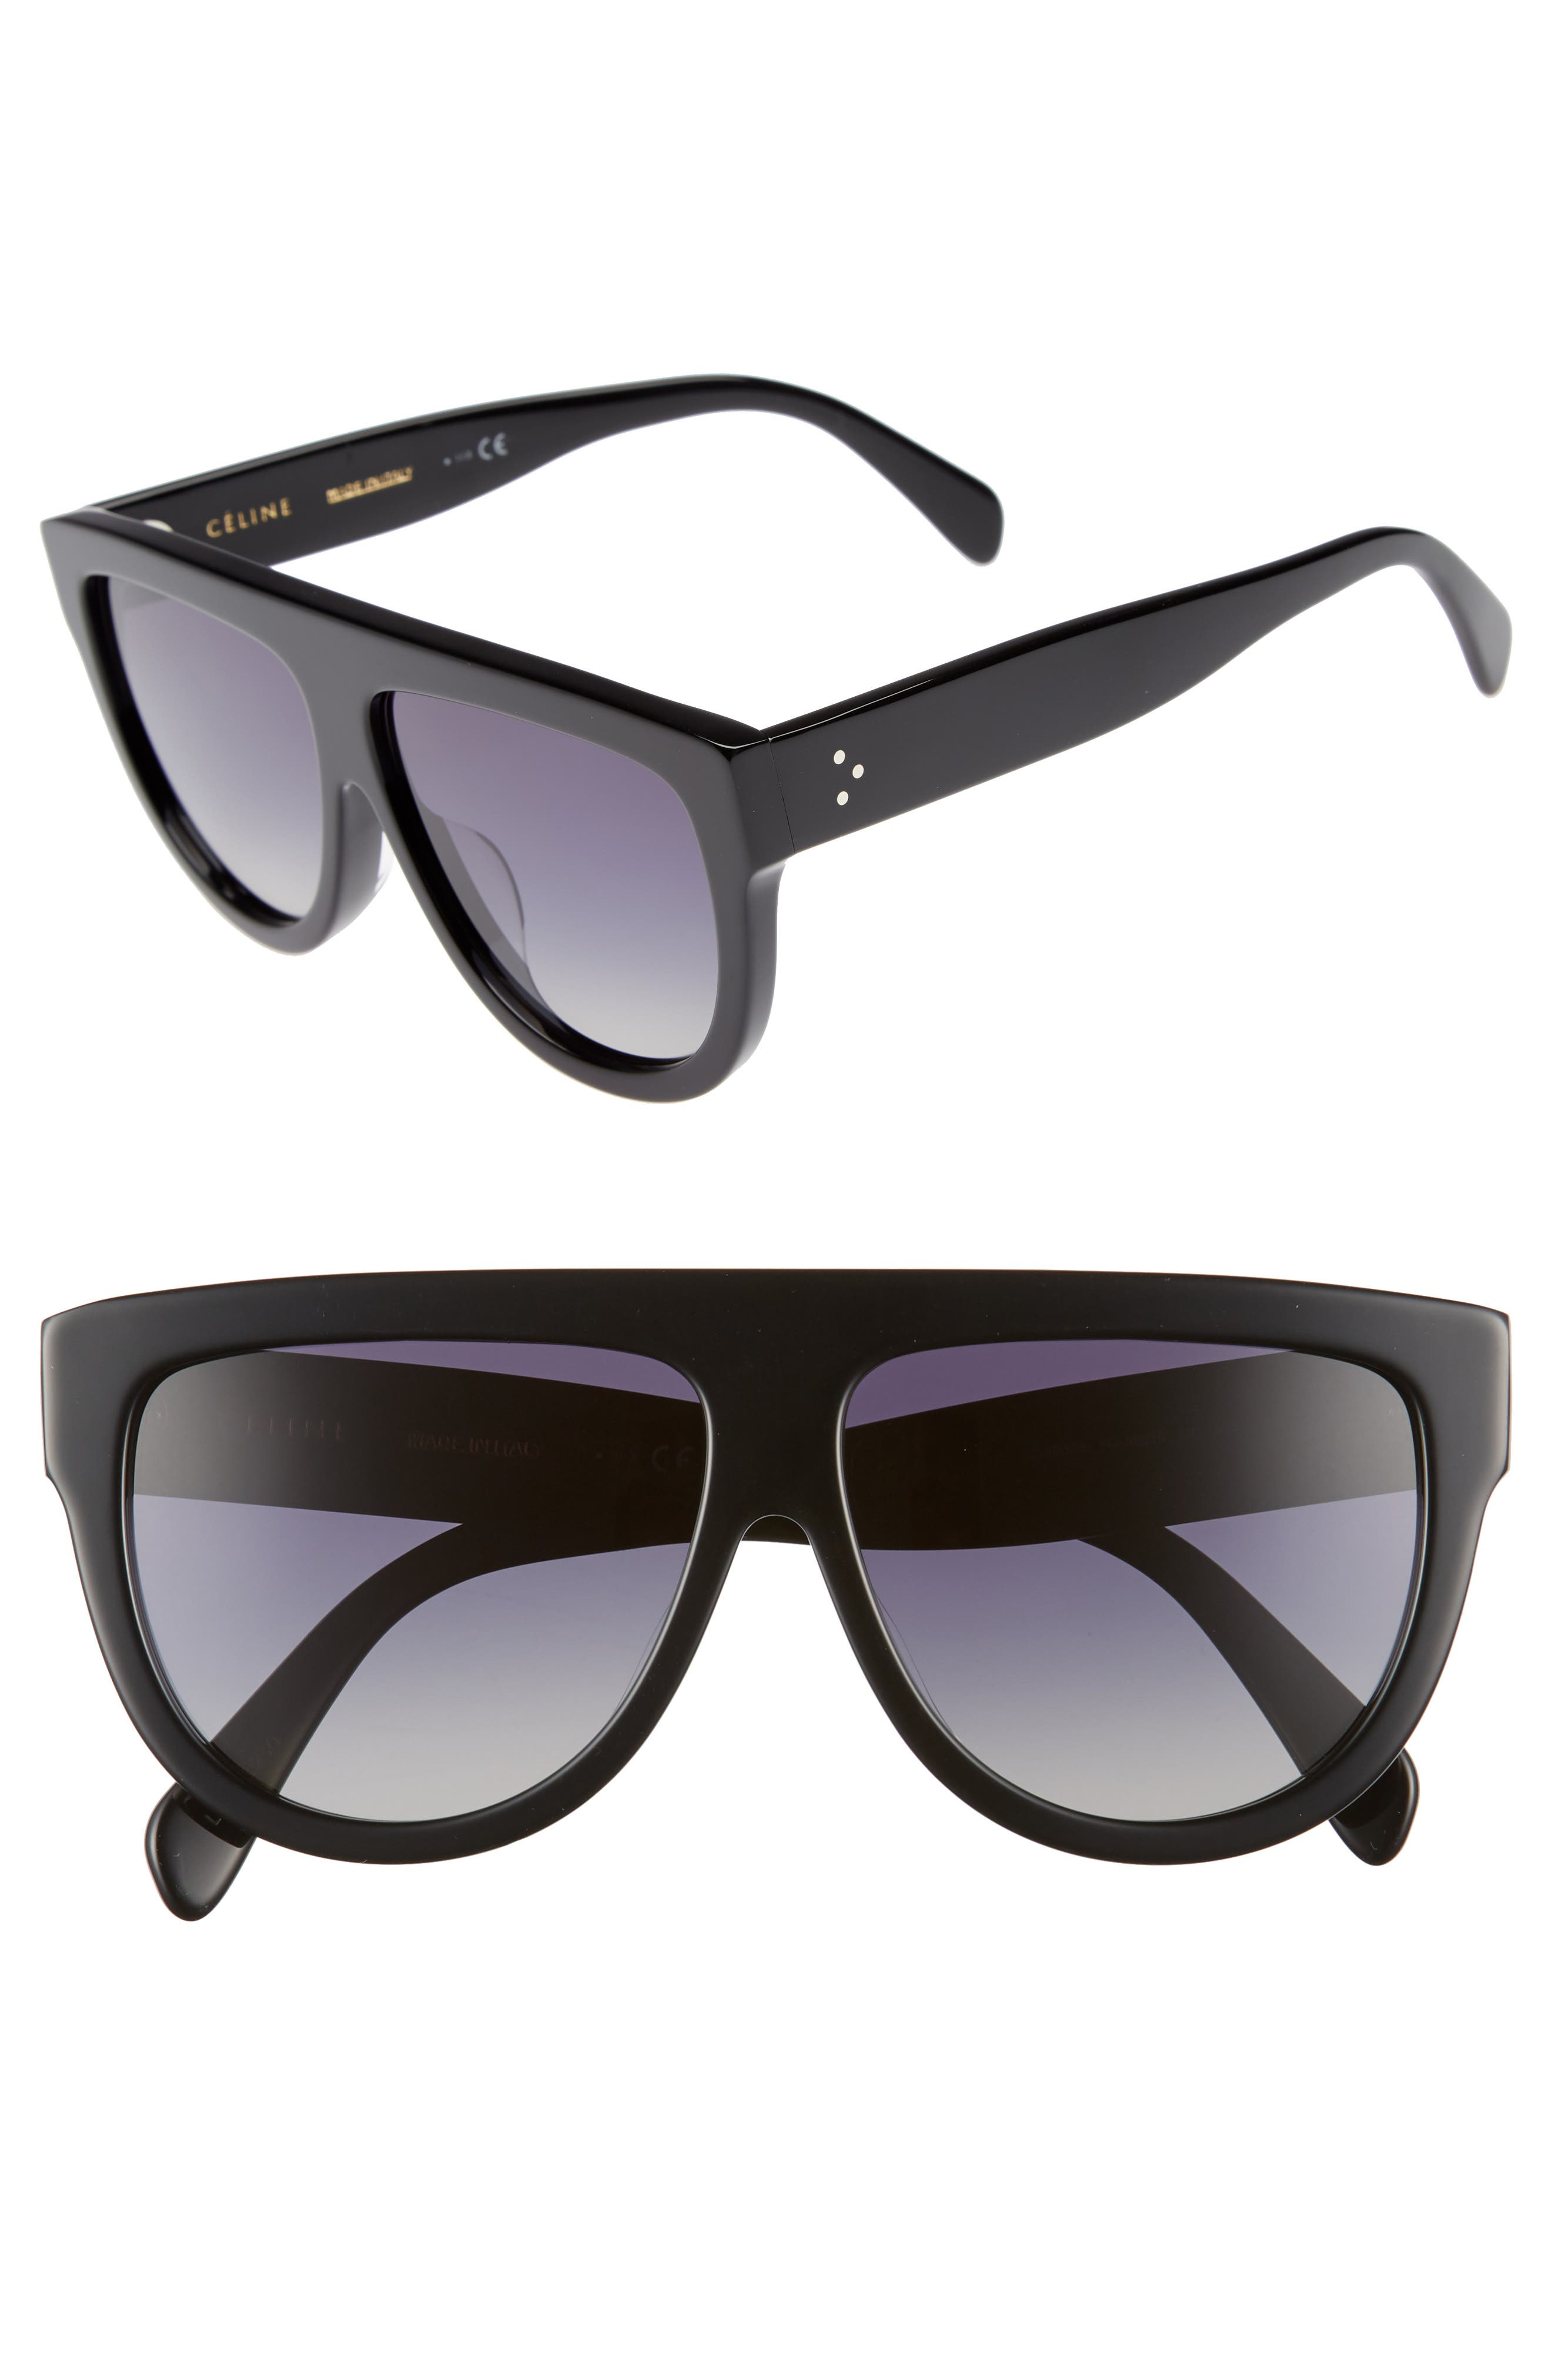 Special Fit 60mm Polarized Gradient Flat Top Sunglasses,                             Main thumbnail 1, color,                             001